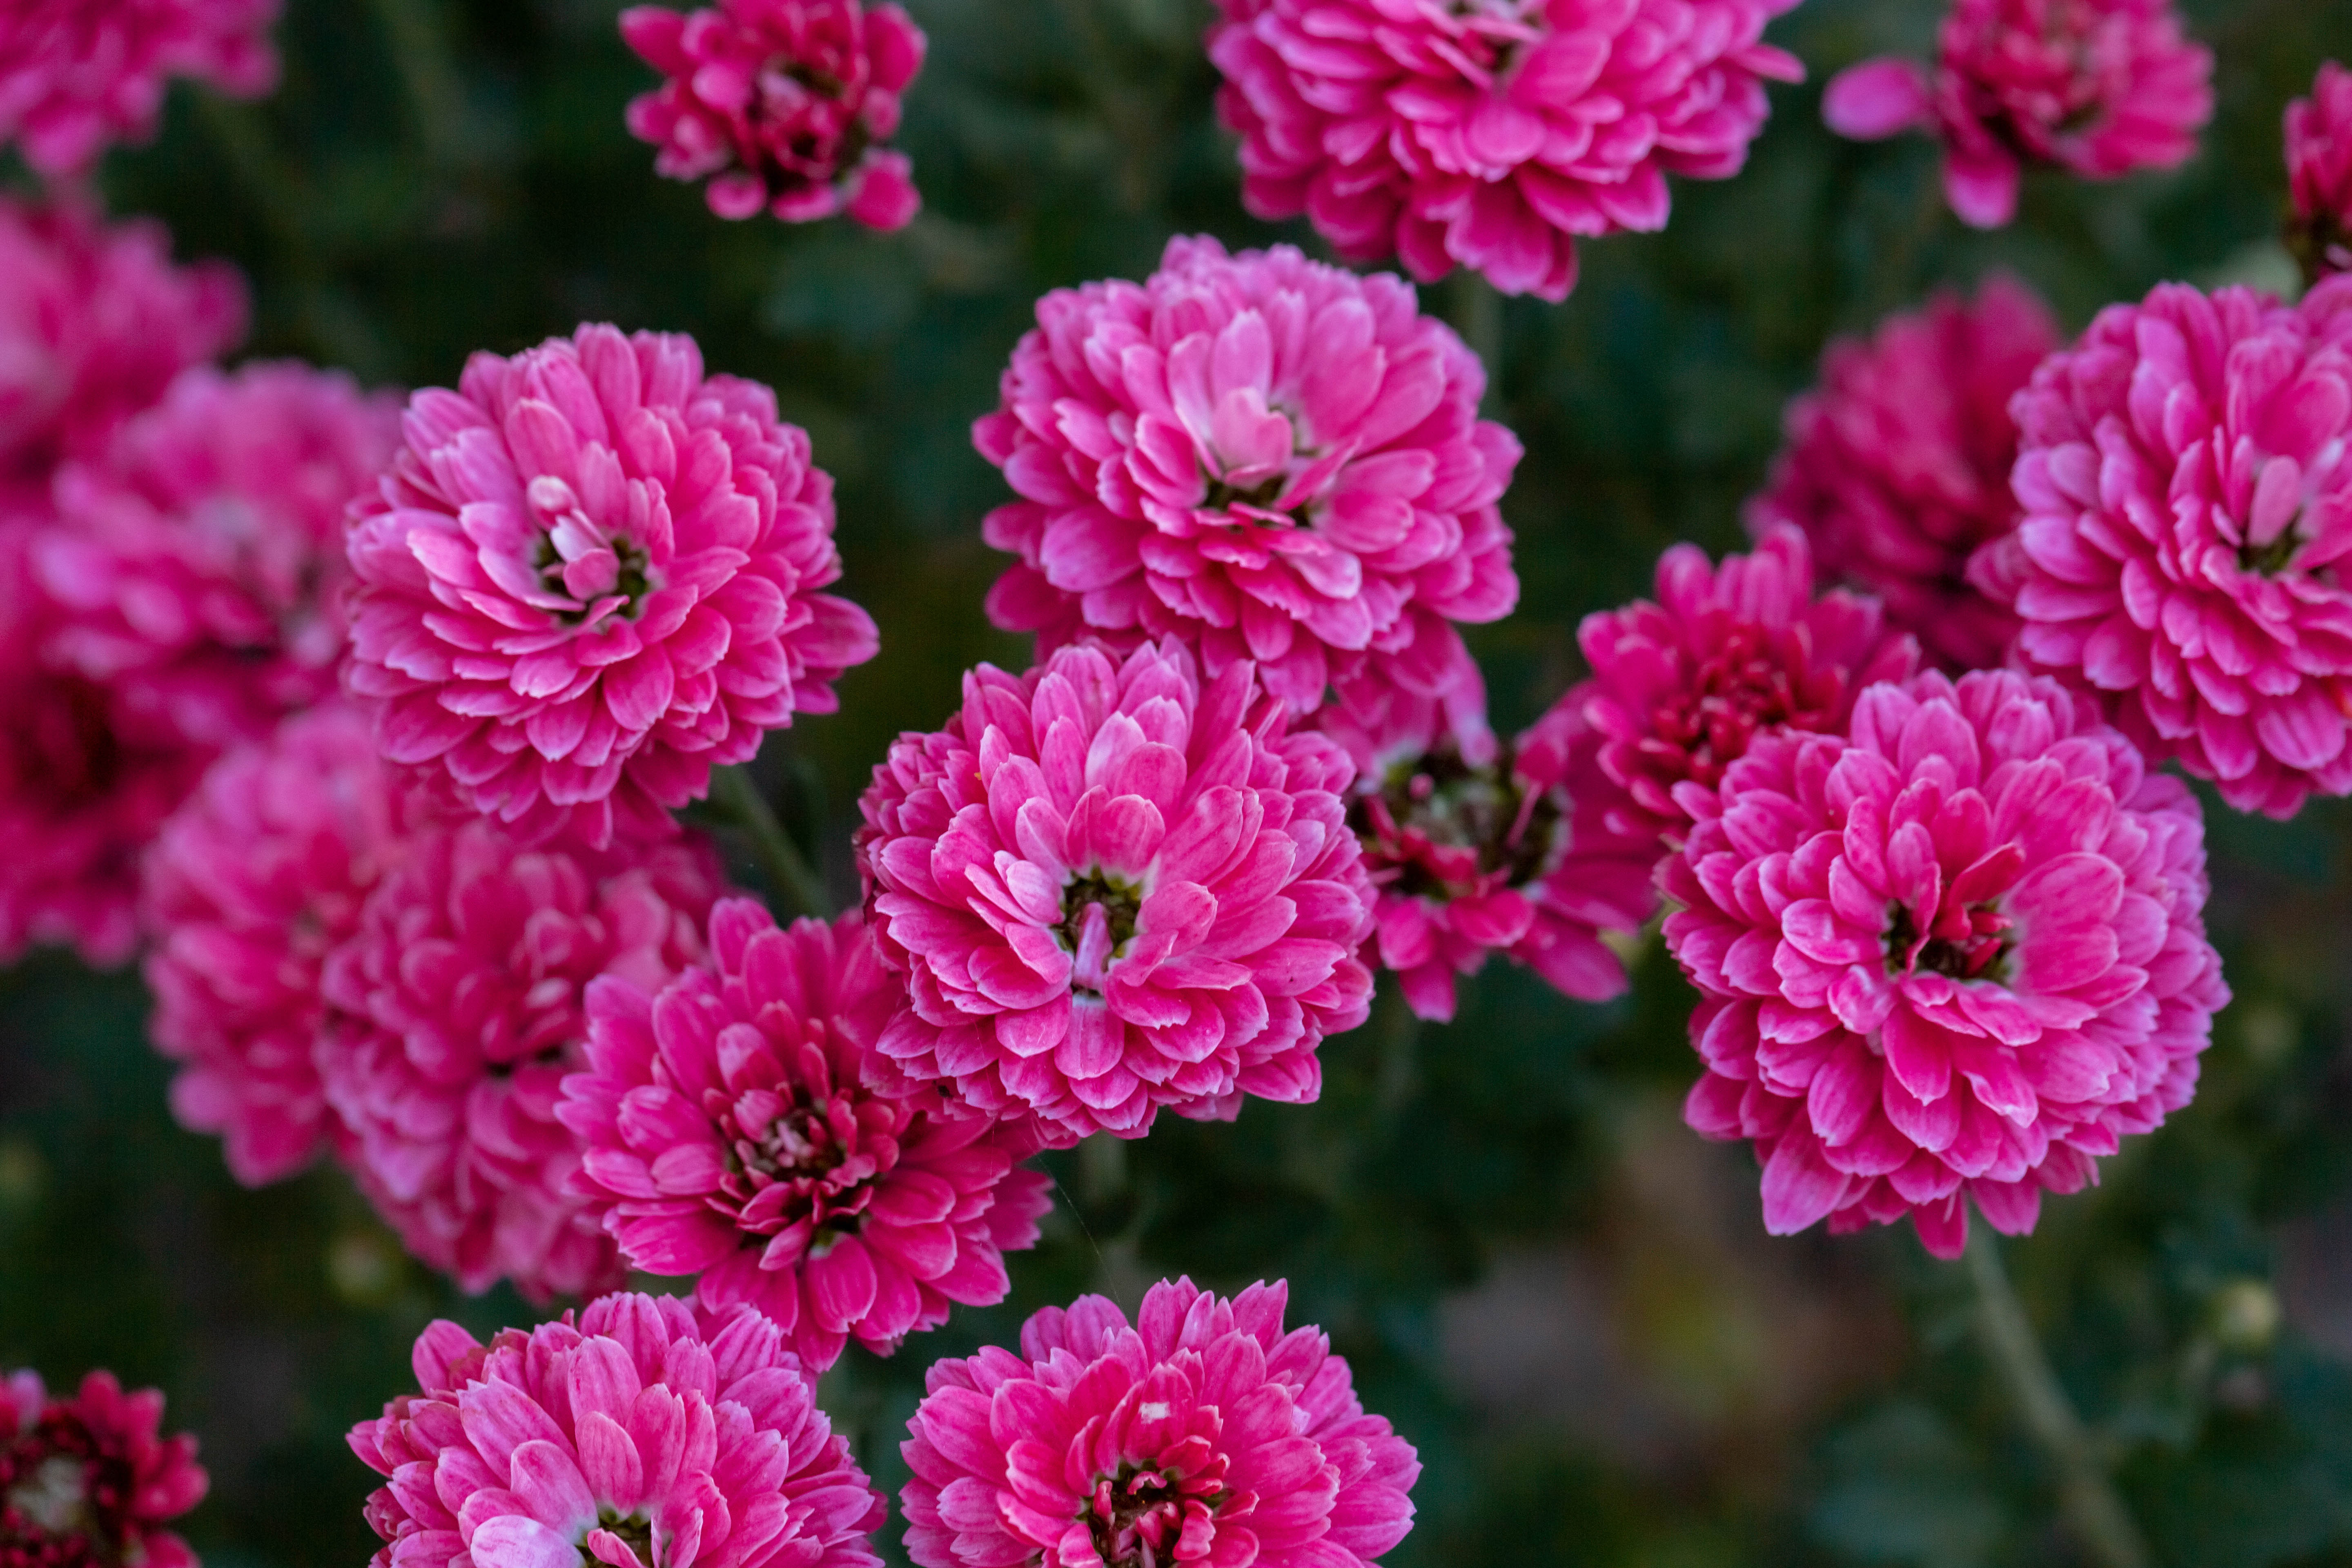 75179 download wallpaper Flowers, Pink, Chrysanthemum, Plant, Bloom, Flowering screensavers and pictures for free